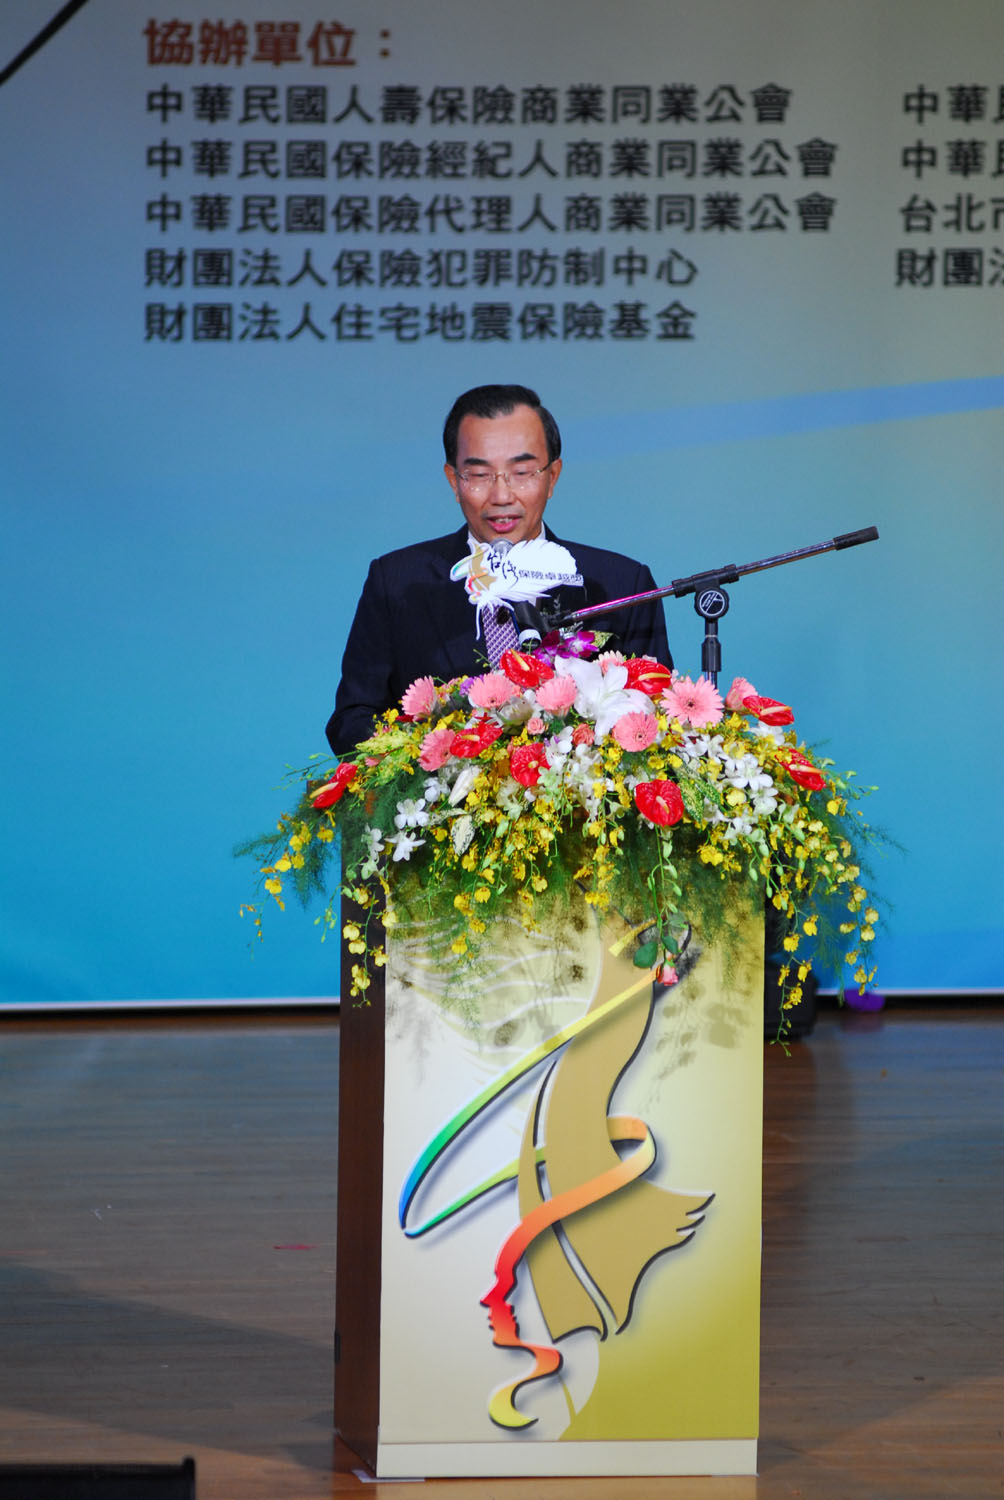 Chairman Mark Lai at the Third Taiwan Insurance Excellent Performance Award, 2009/10/14